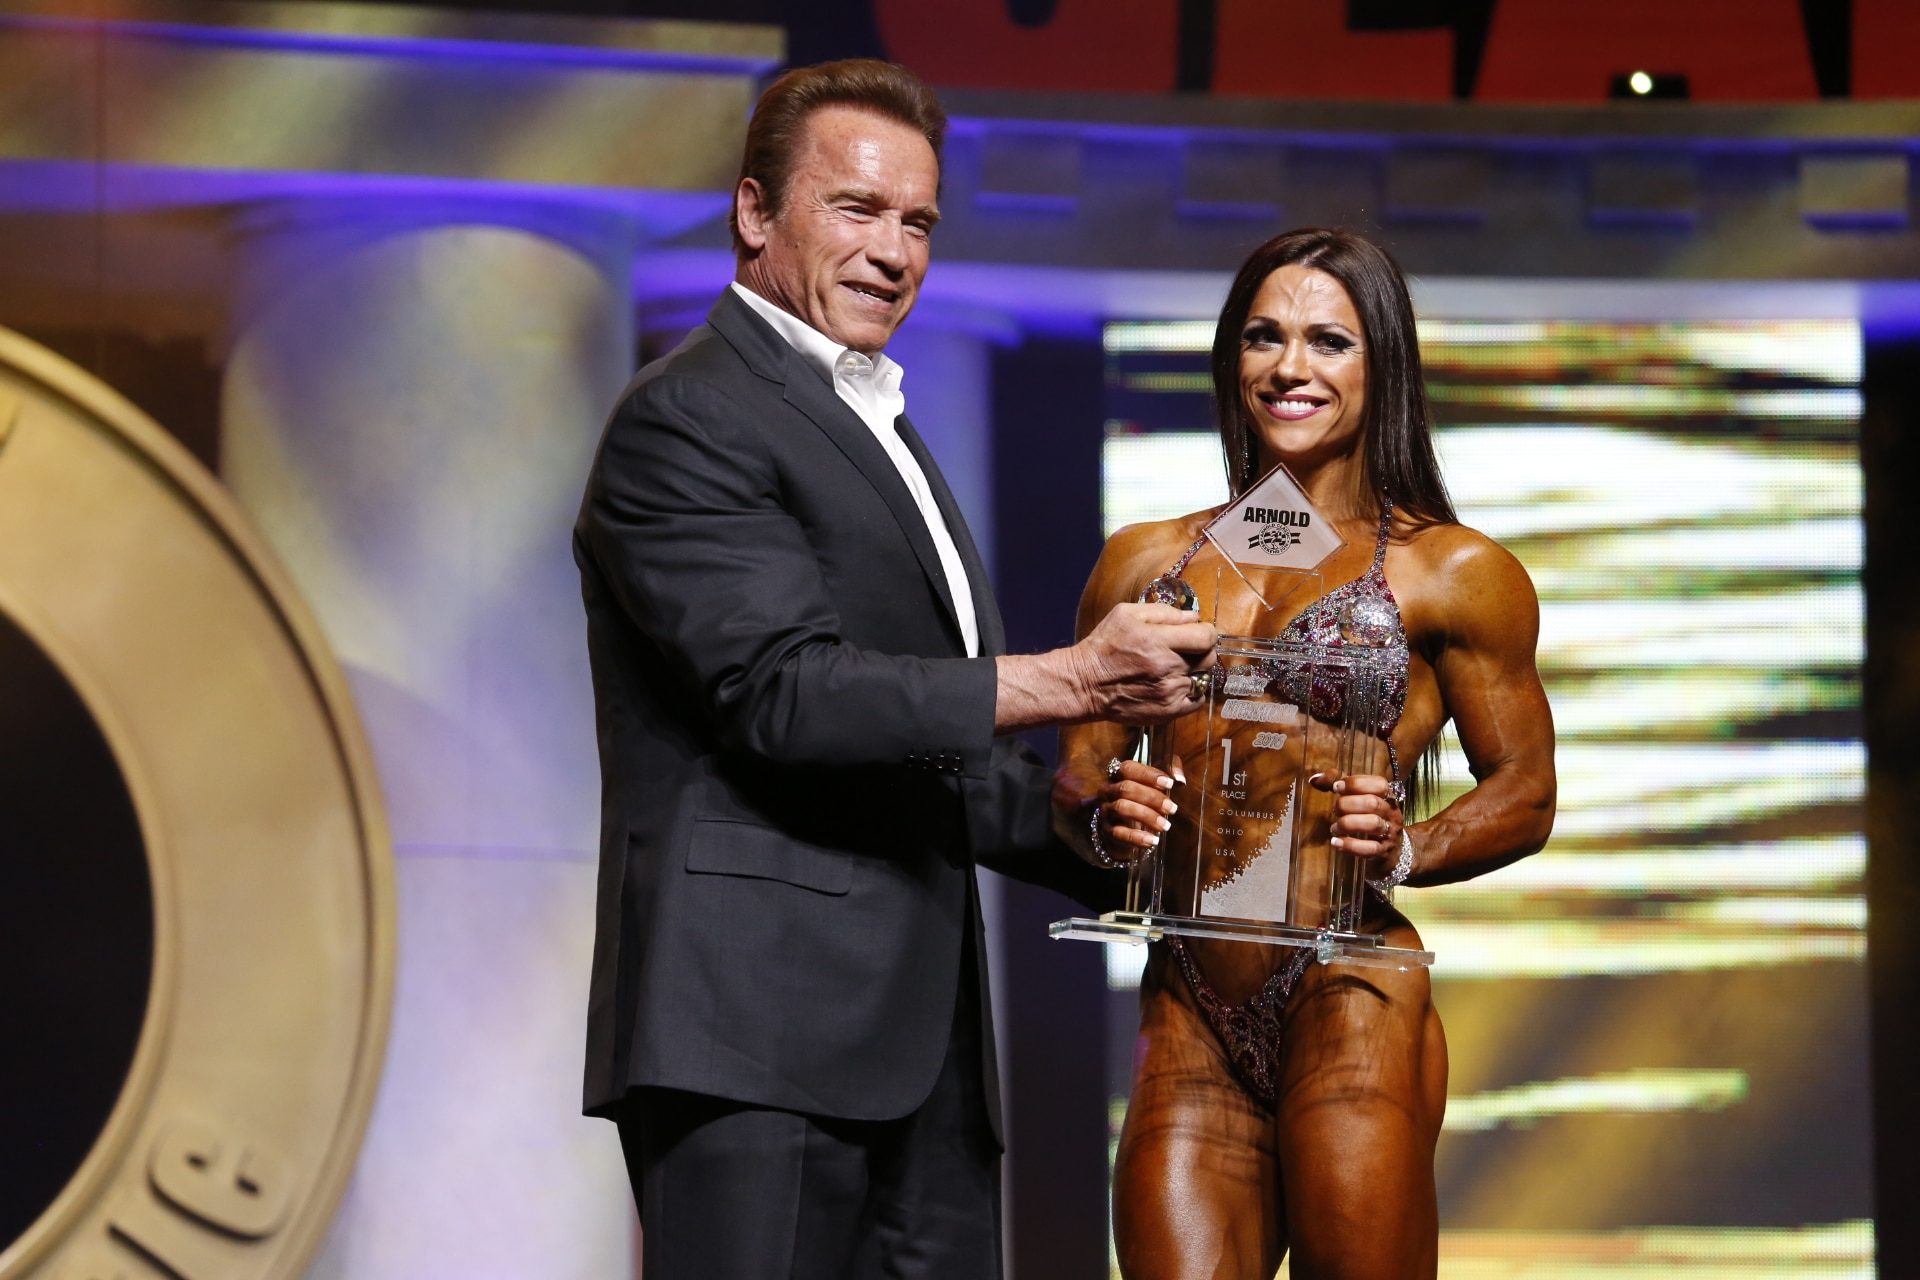 Fitness International Winner Oksana Grishina